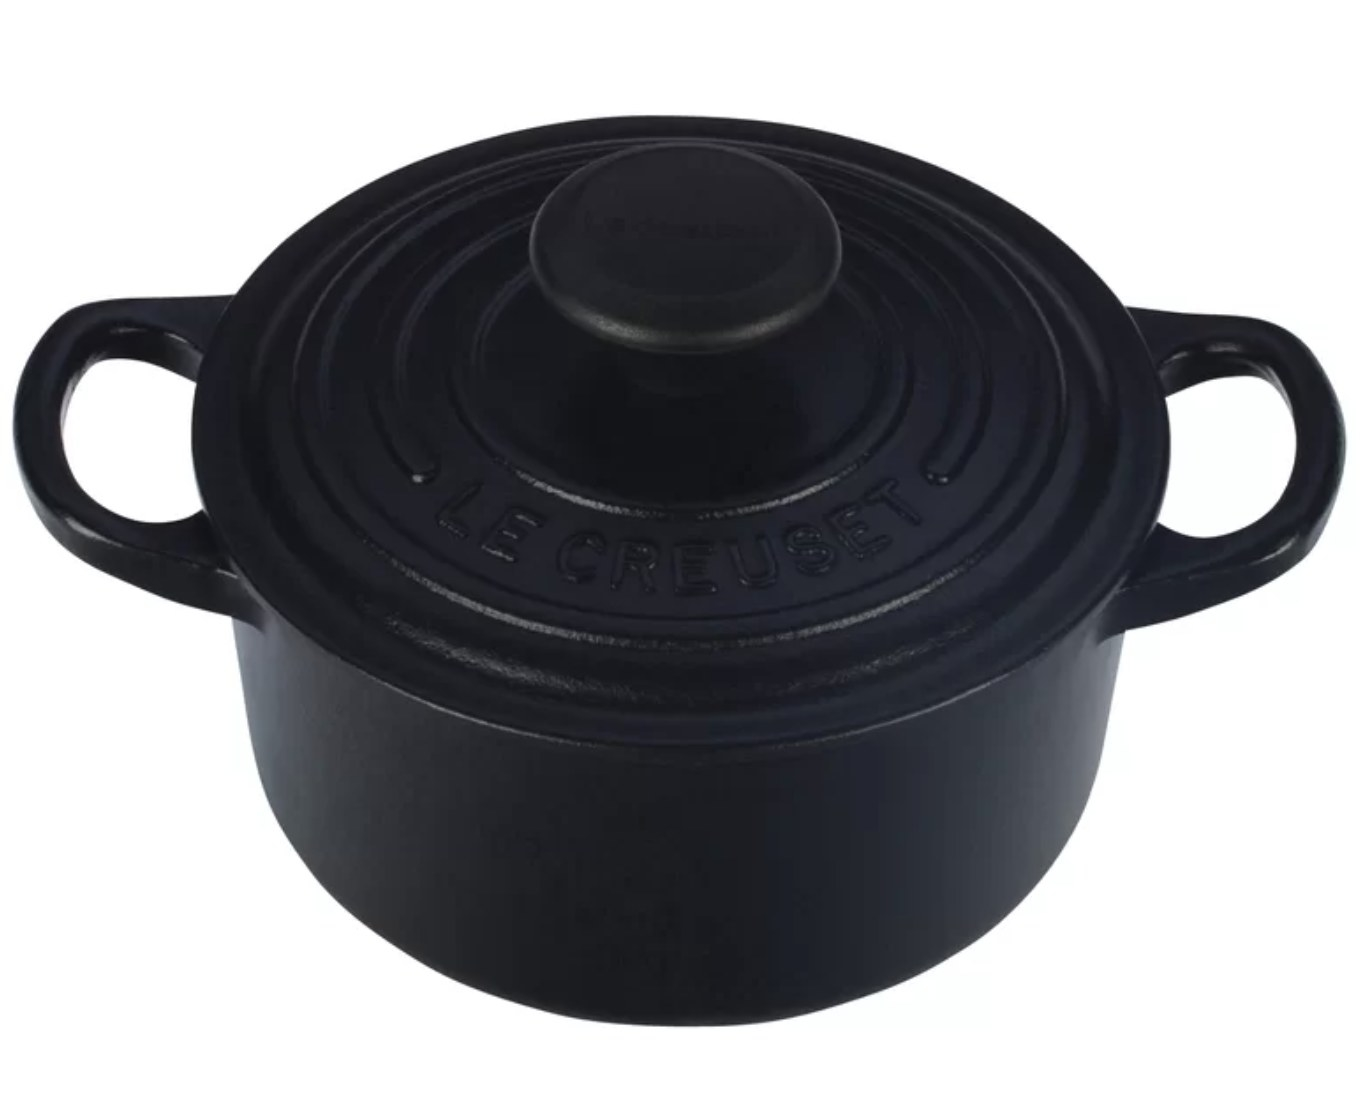 black Dutch oven